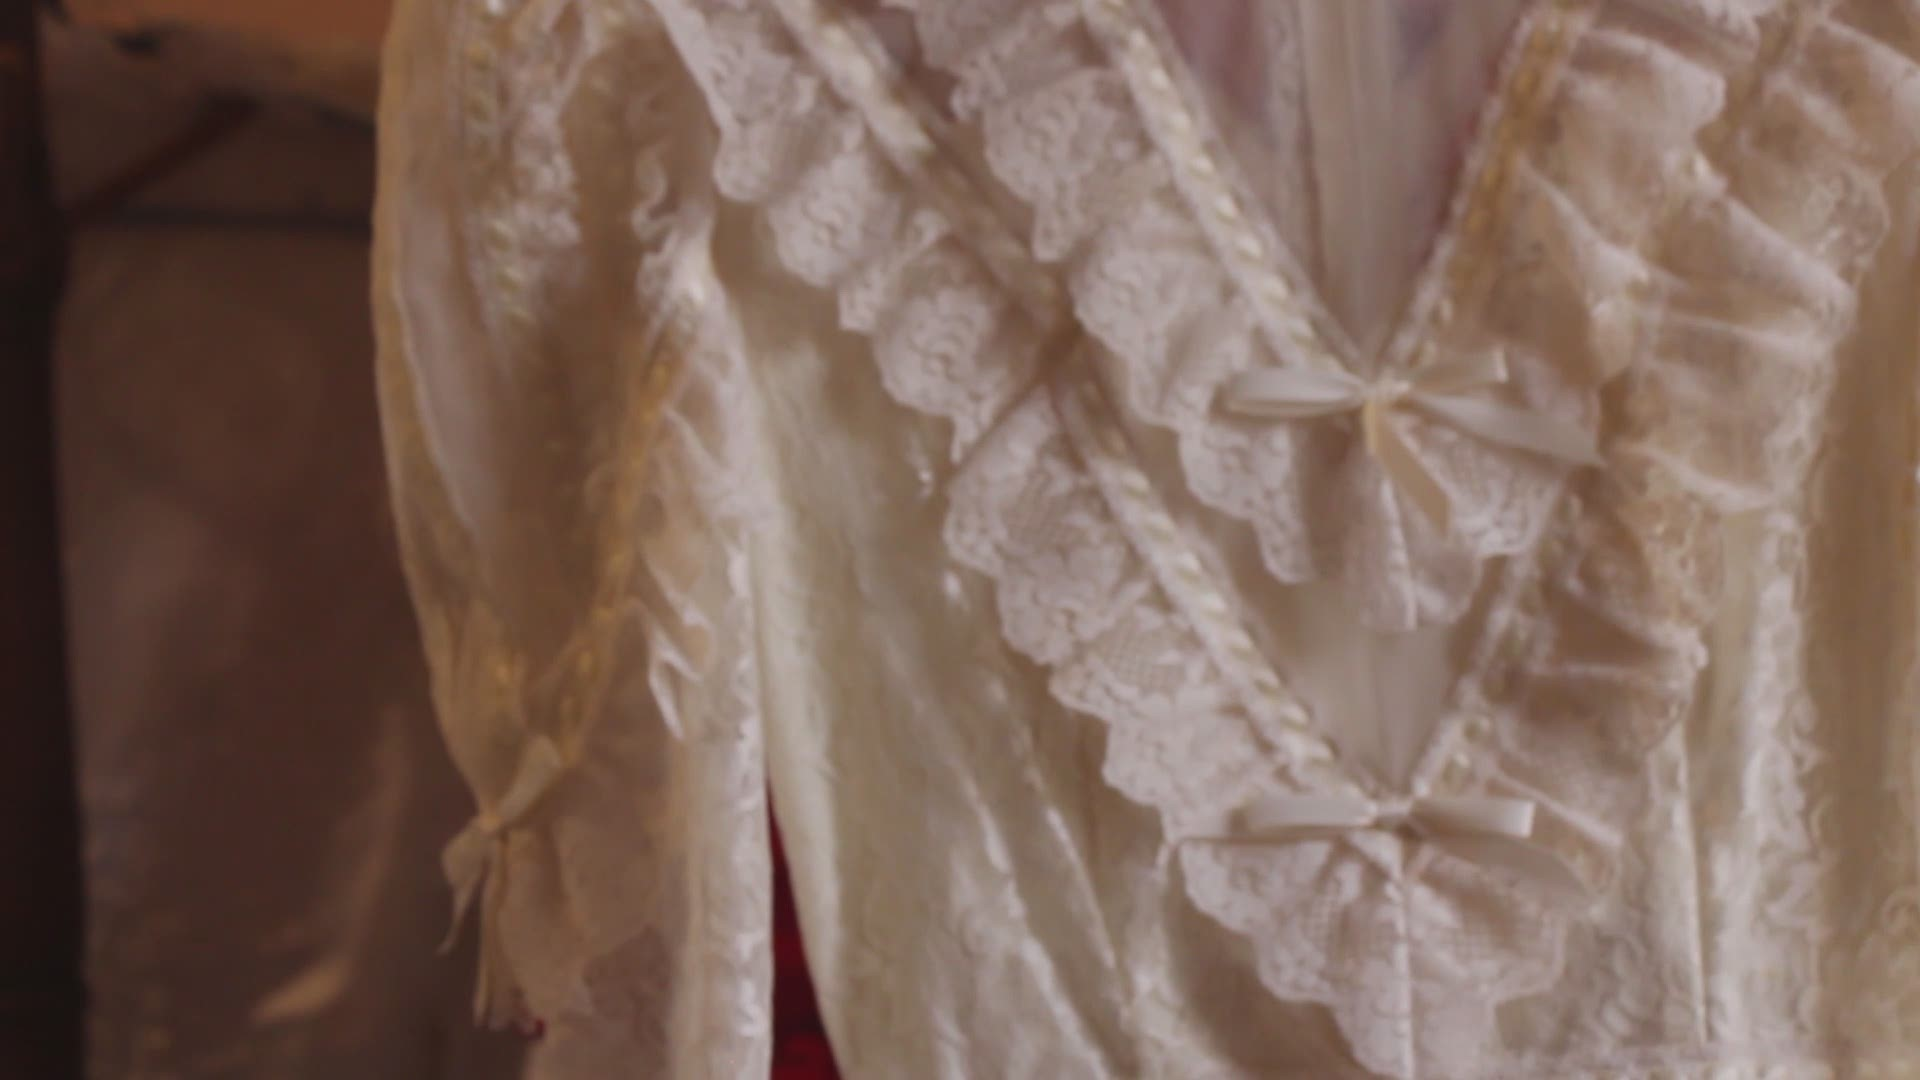 Woman Transforms Wedding Dresses Into Gowns For Angel Babies Ktvb Com,How To Find A Cheap Wedding Dress